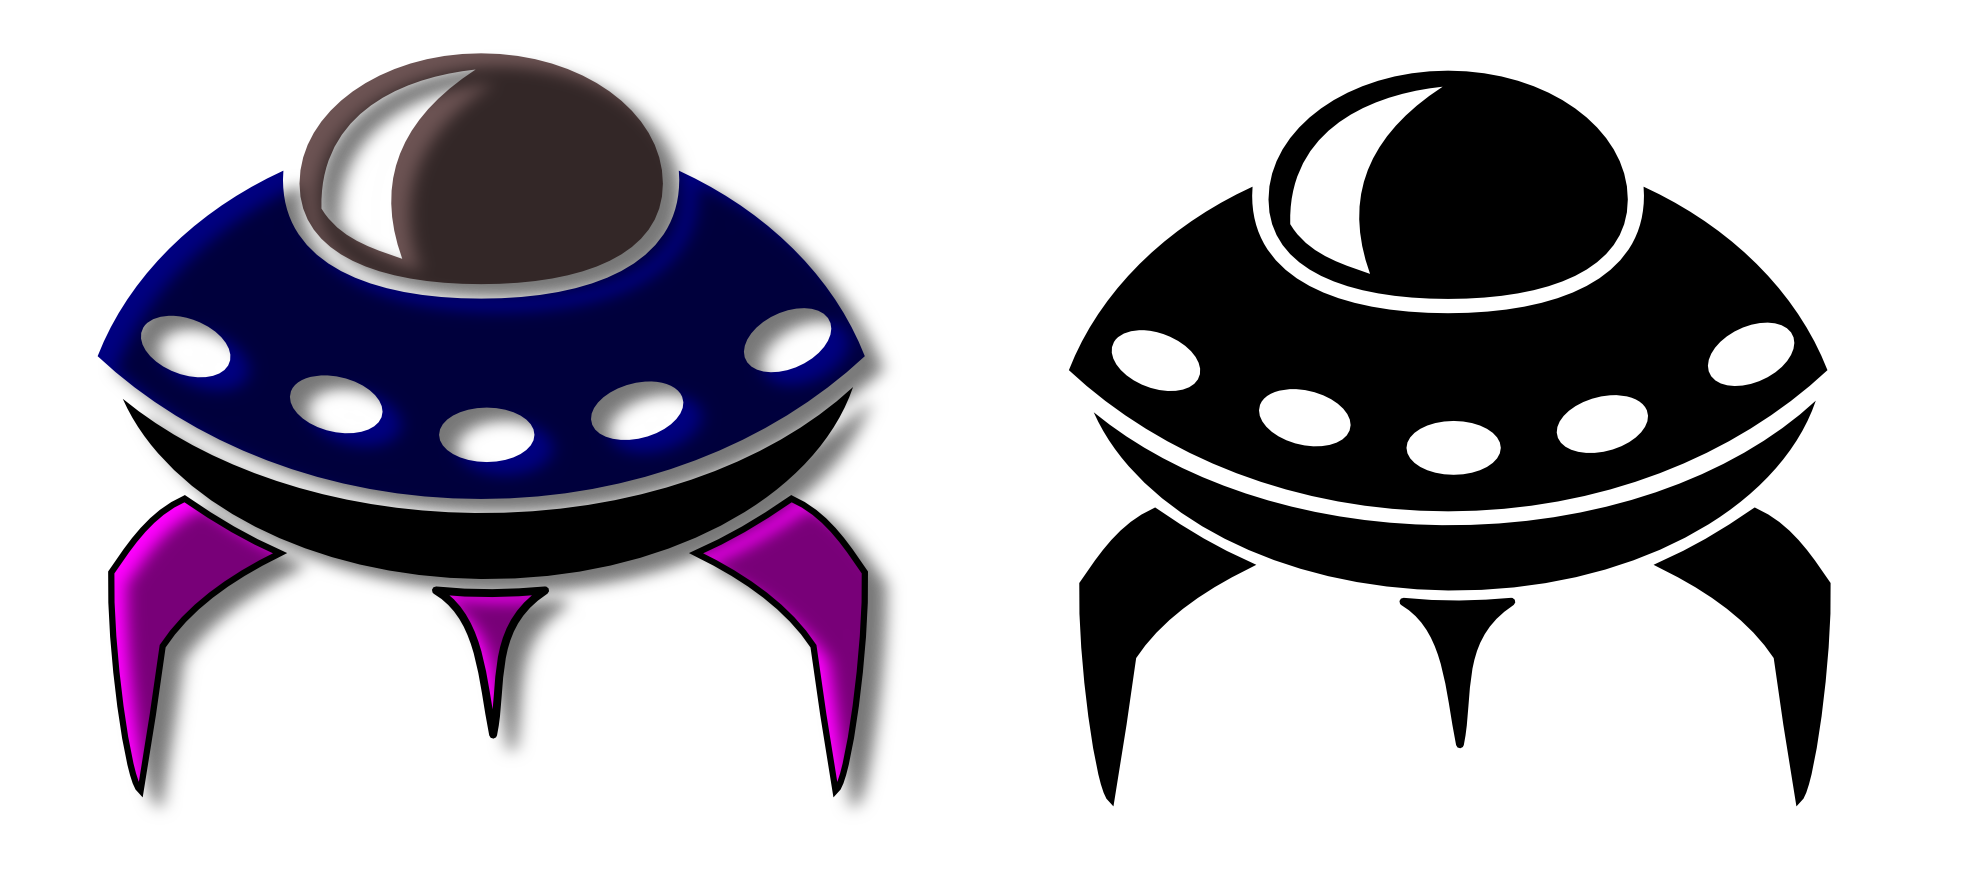 Free Space Ship Image, Download Free Clip Art, Free Clip Art.